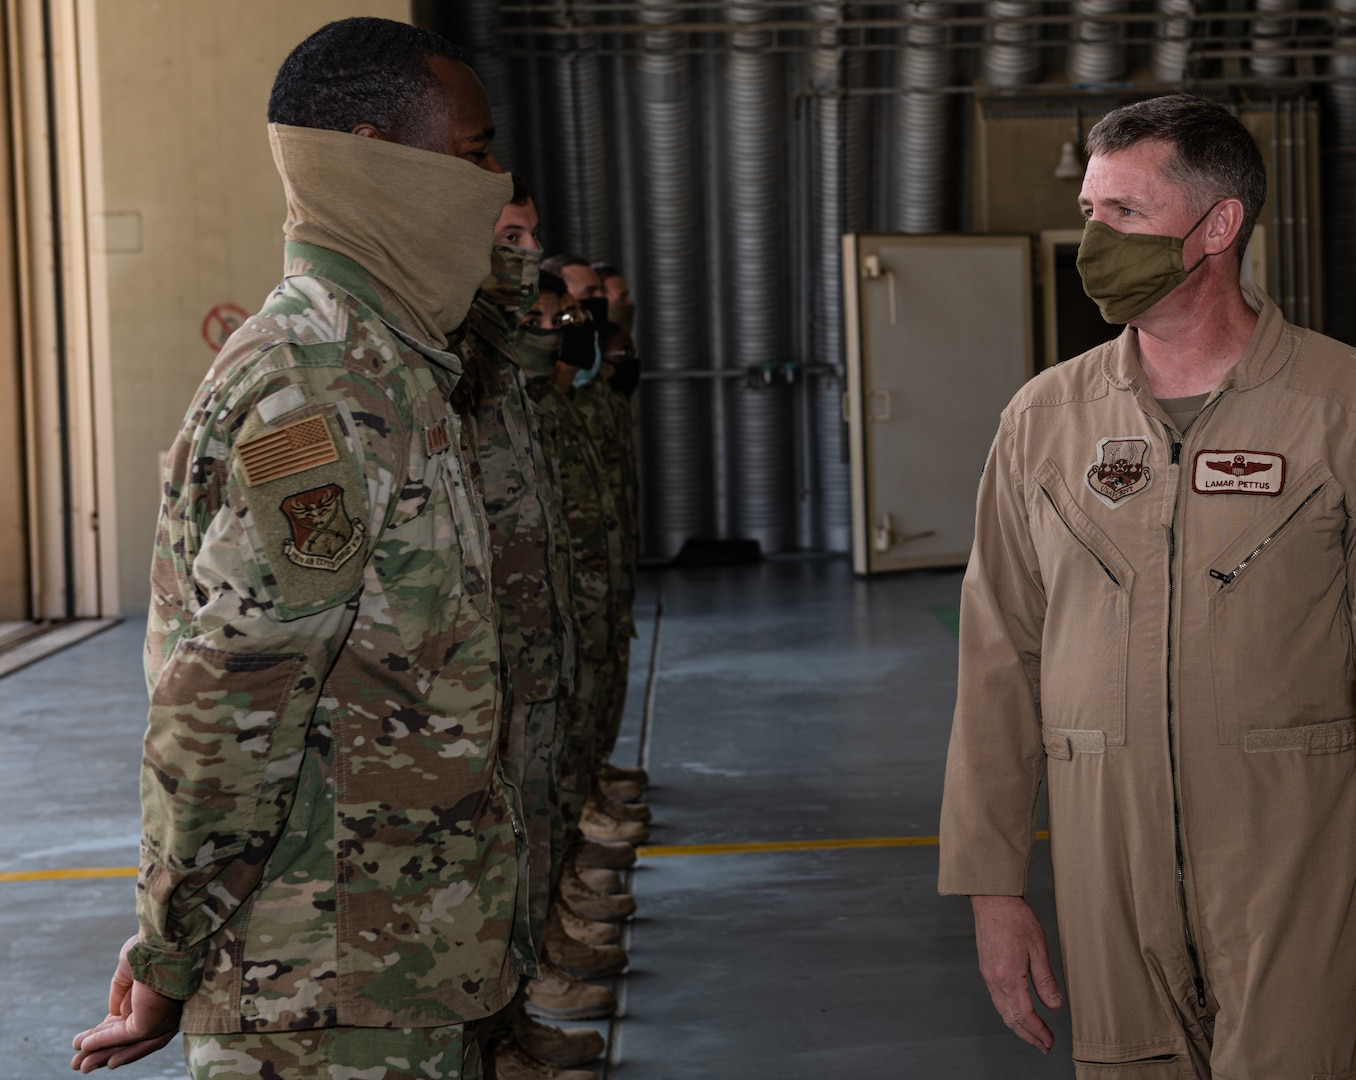 Brig. Gen. Evan Pettus, 378th Air Expeditionary Wing commander, speaks with Airmen from the 378th Expeditionary Maintenance Squadron ahead of an Agile Combat Employment capstone event Feb. 27, 2021, at an airbase in the Kingdom of Saudi Arabia.